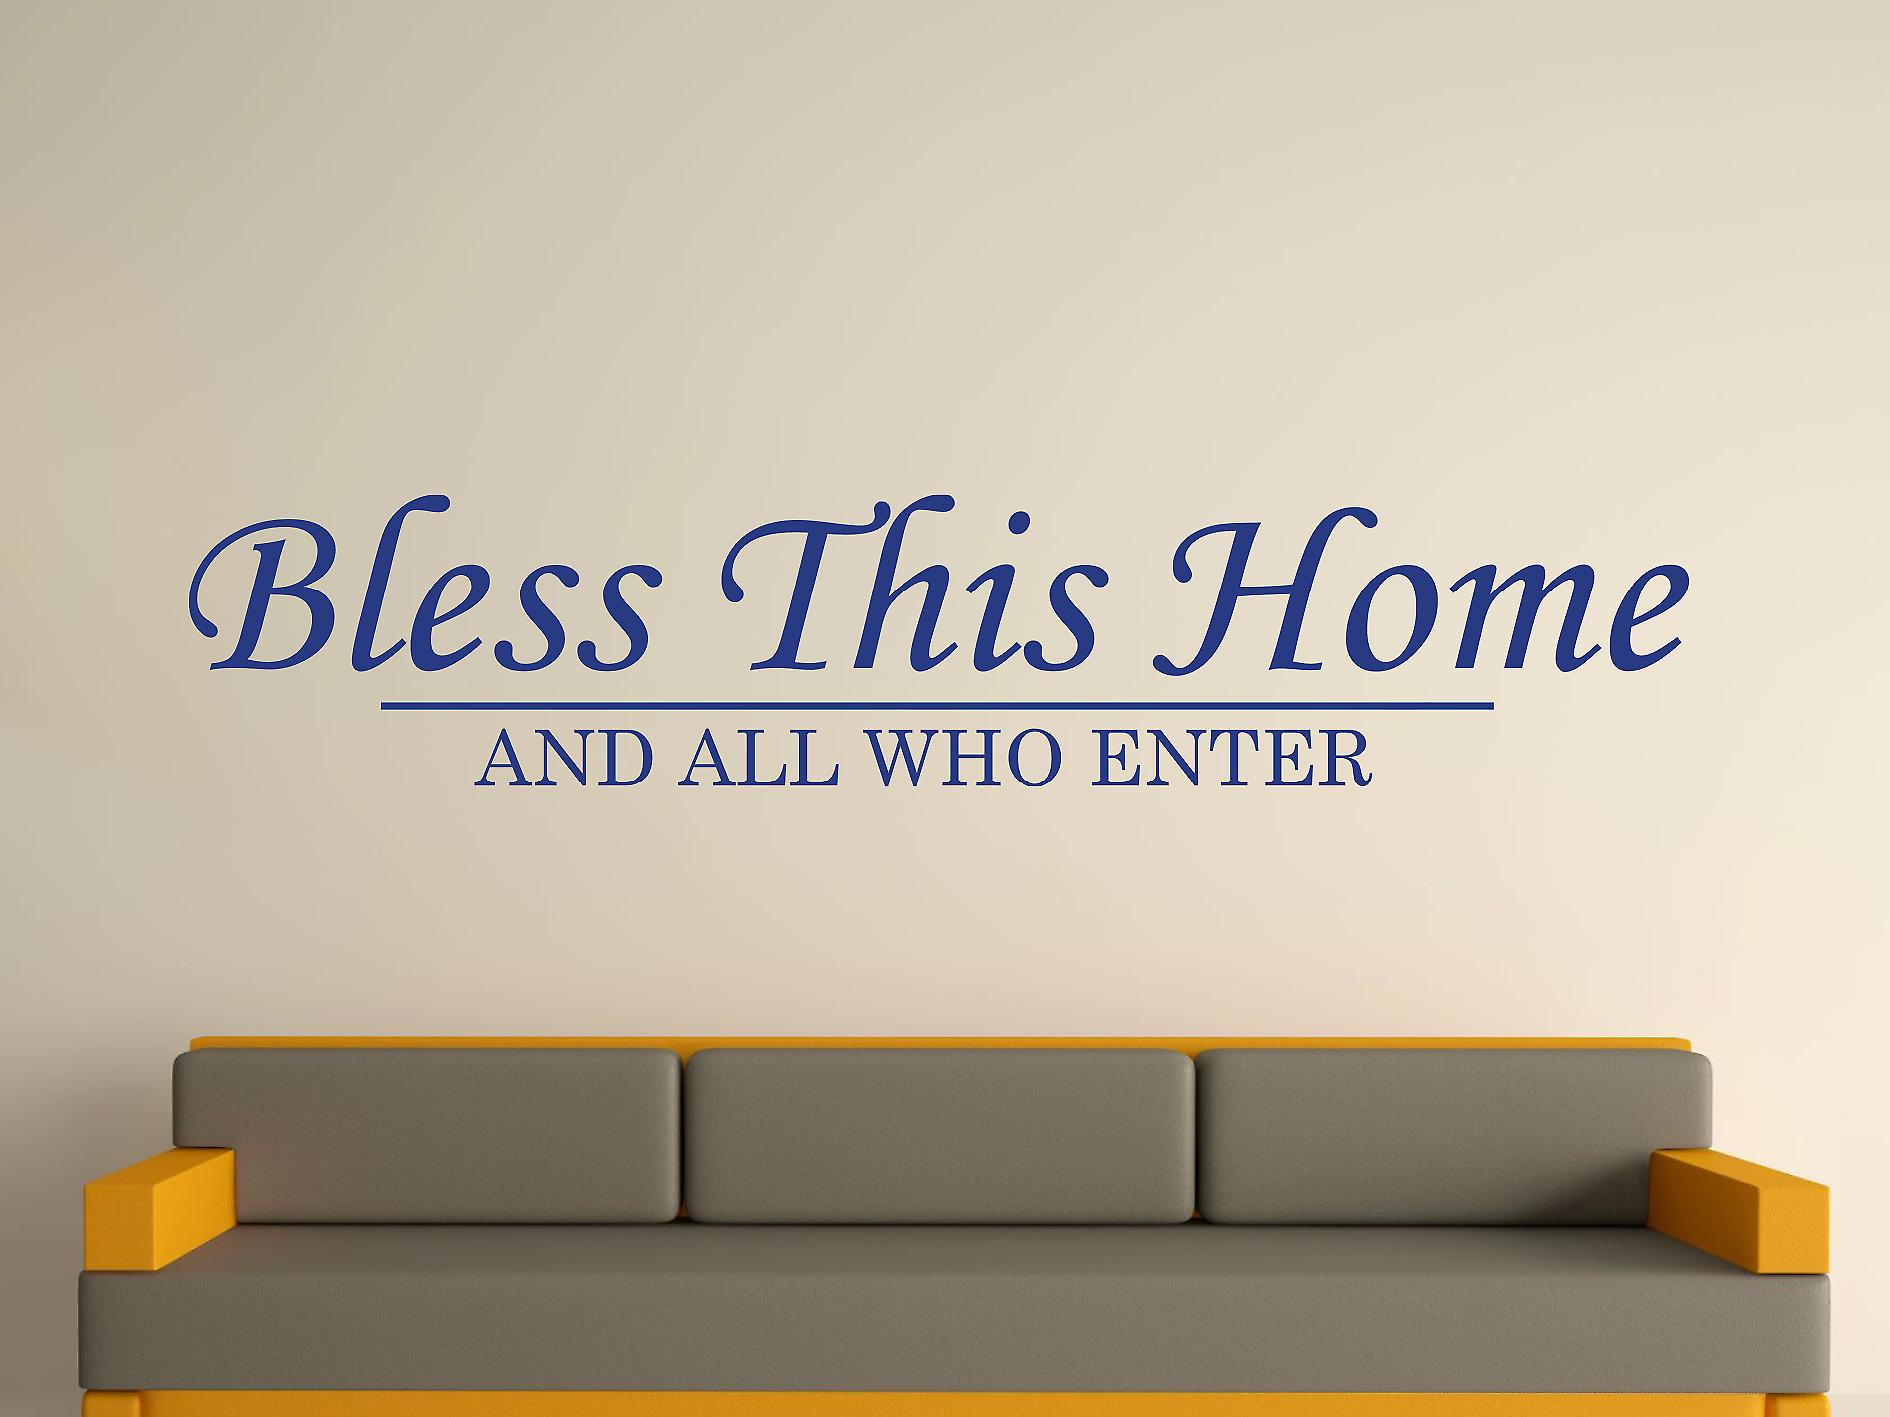 Bless This Home Wall Art Sticker - Azure